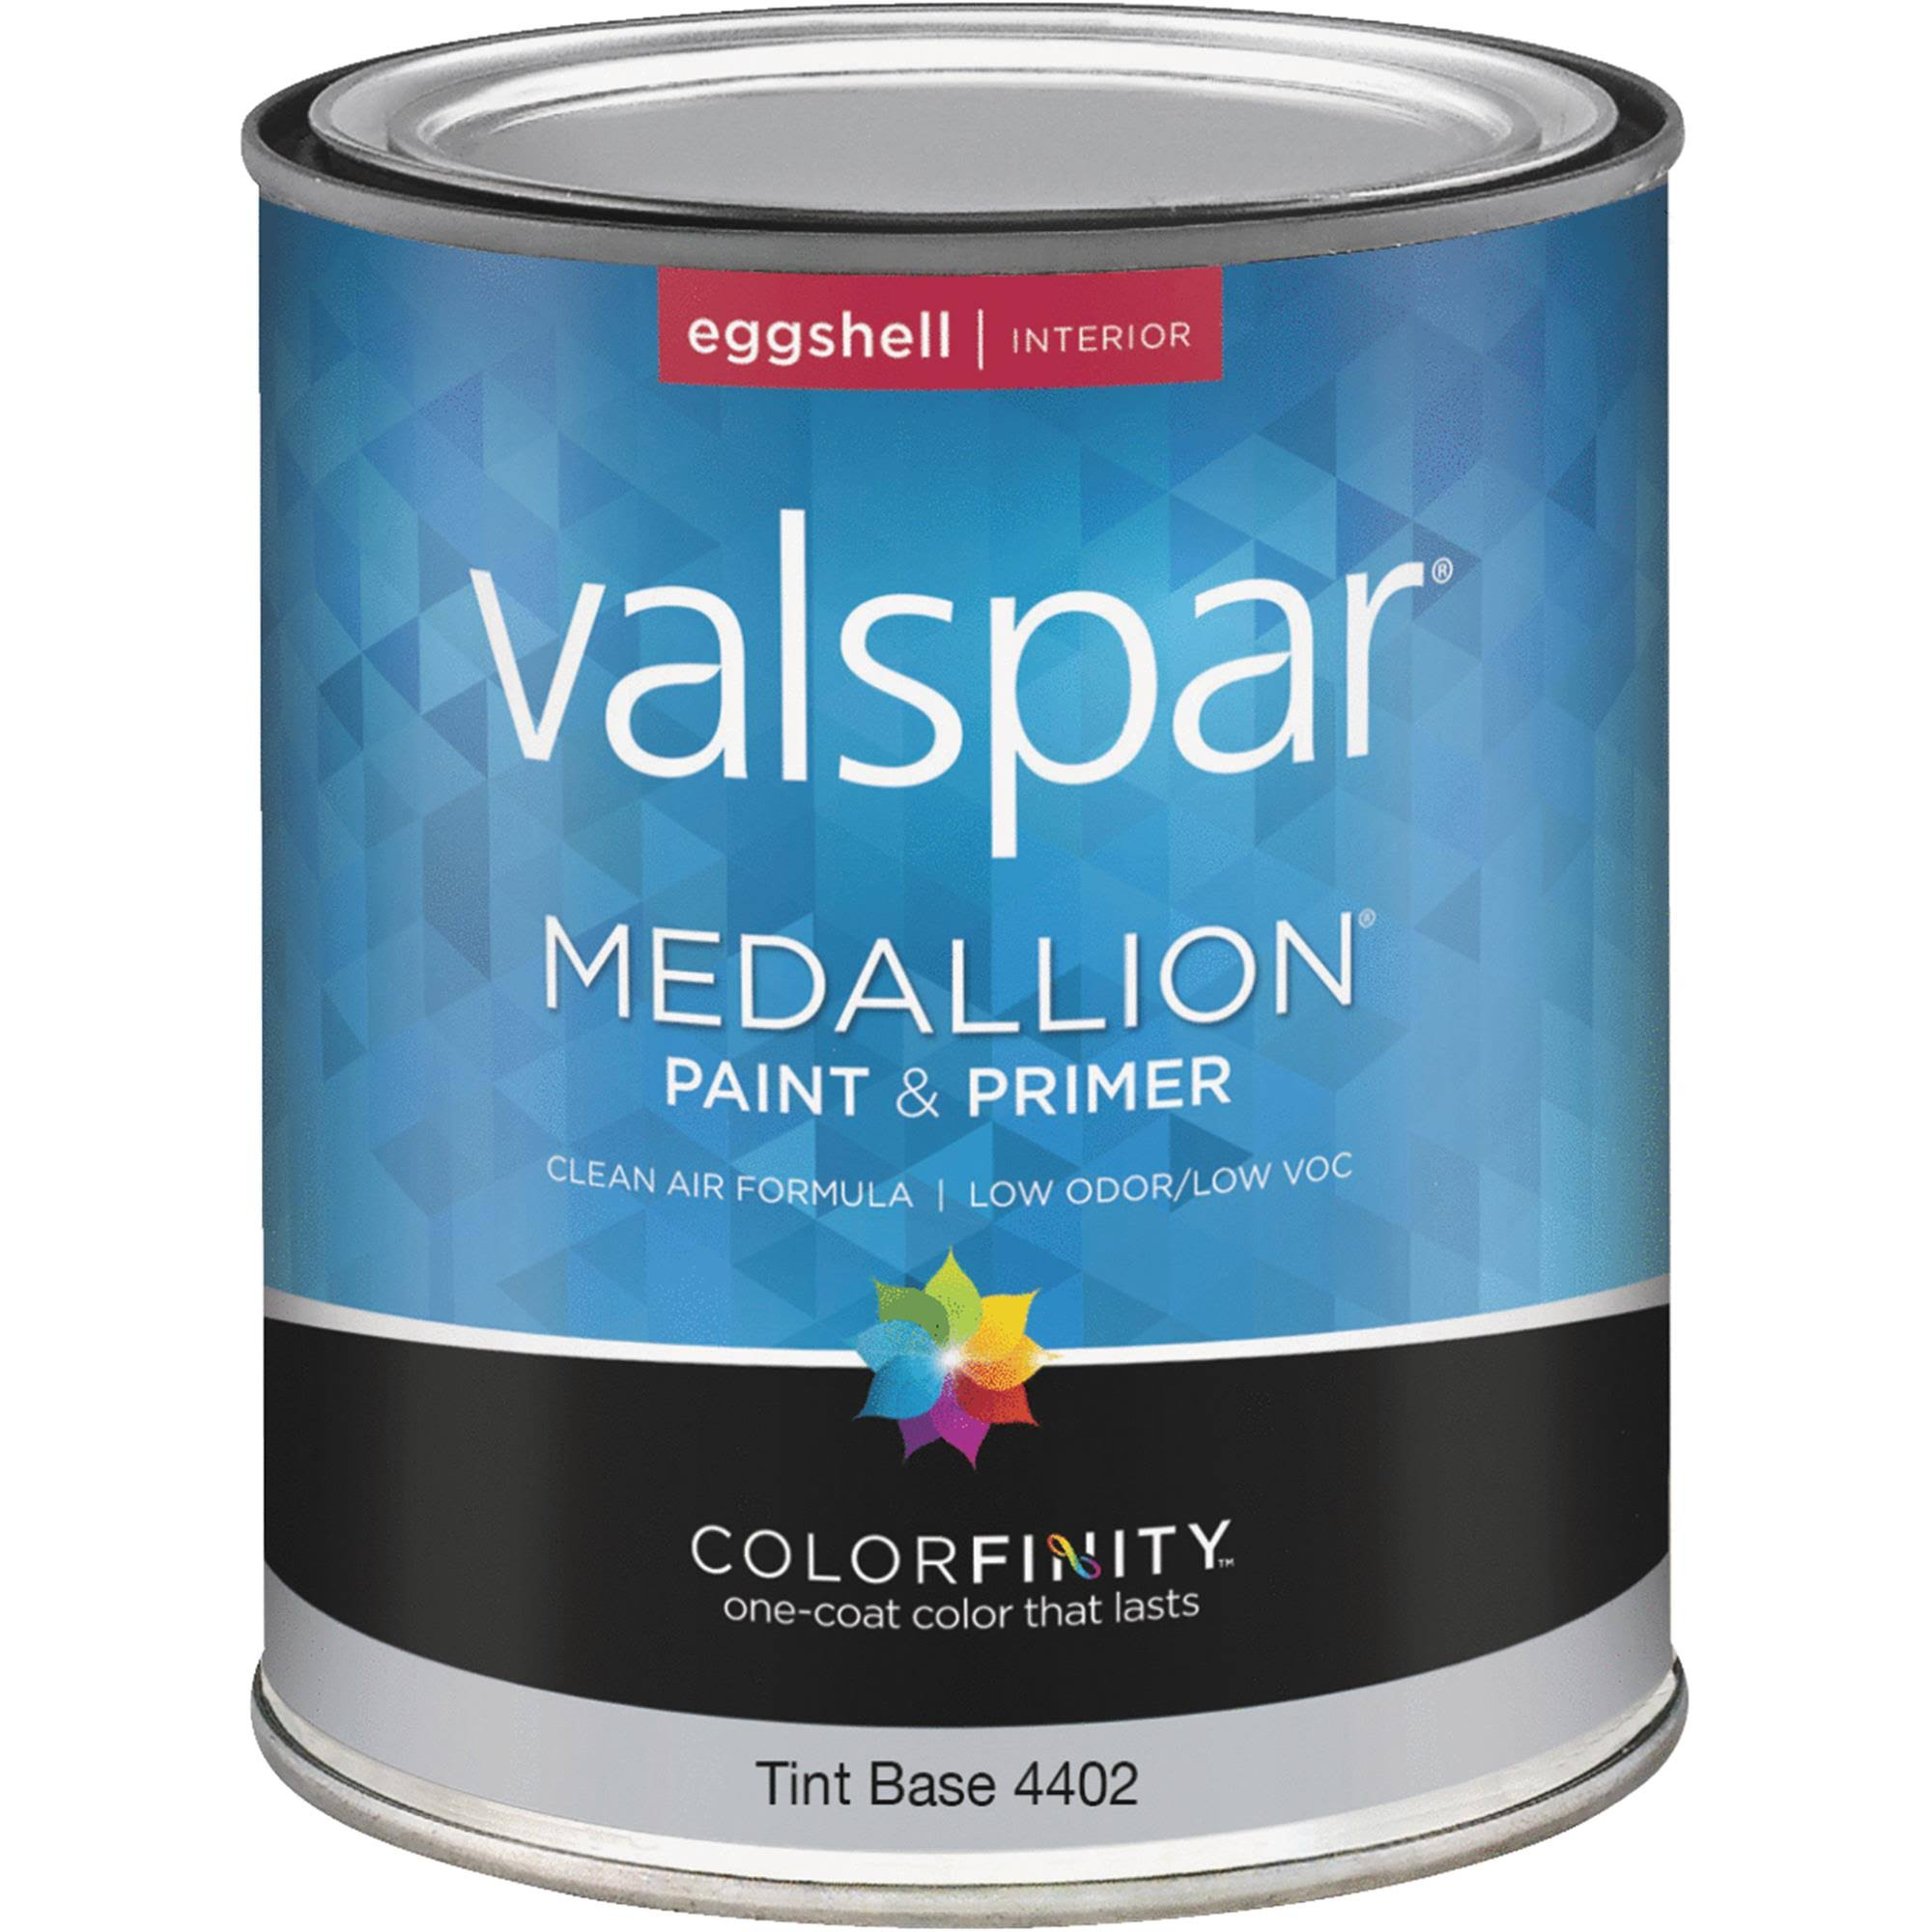 Valspar Tint Base Medallion Interior Acrylic Paint - Eggshell, 1 Quart